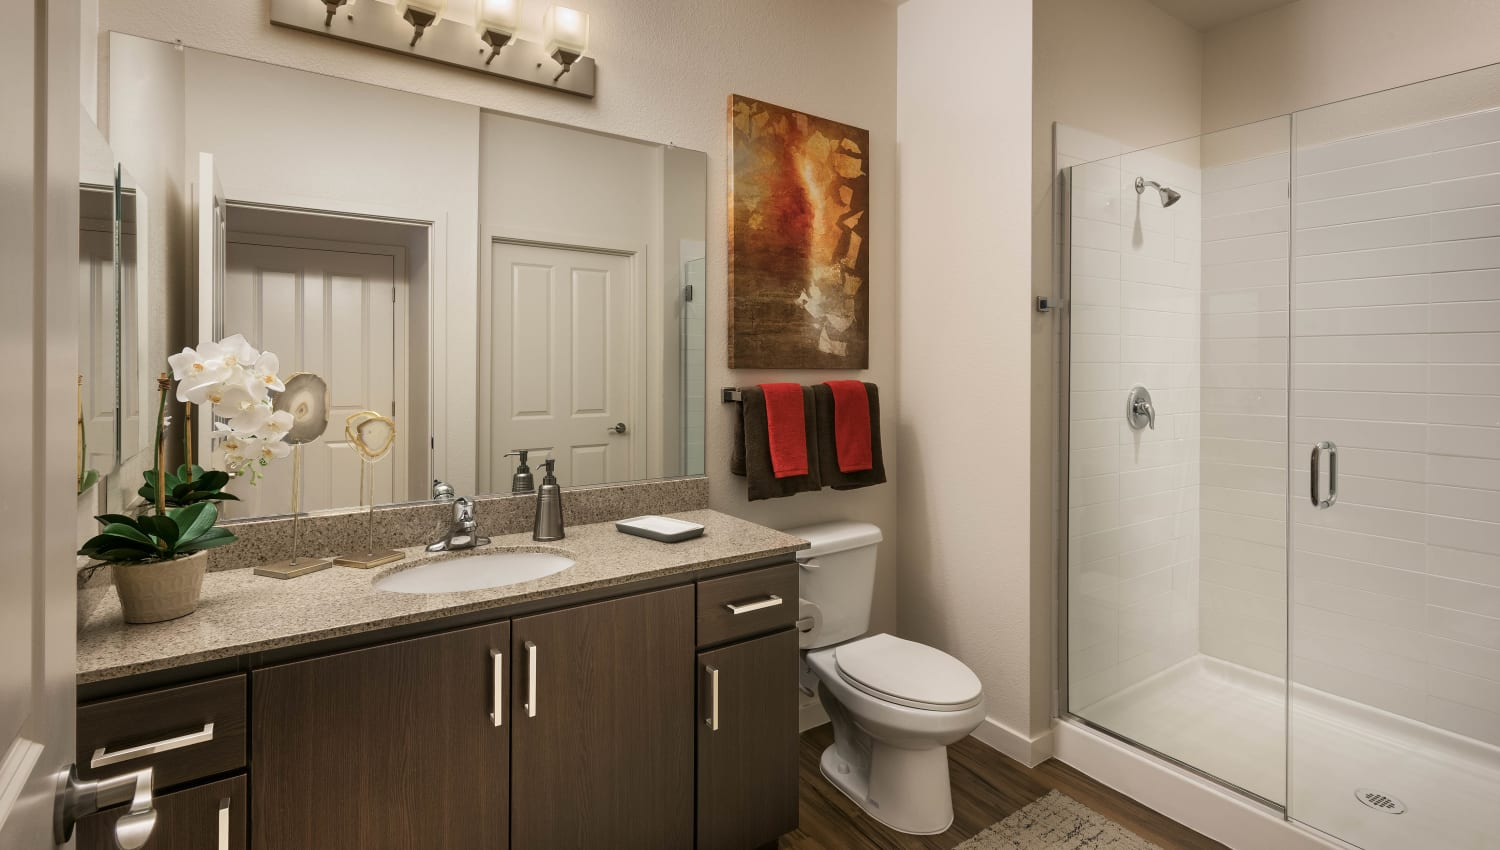 Large vanity mirror and a stand-up shower in a model apartment's bathroom at Vistara at SanTan Village in Gilbert, Arizona